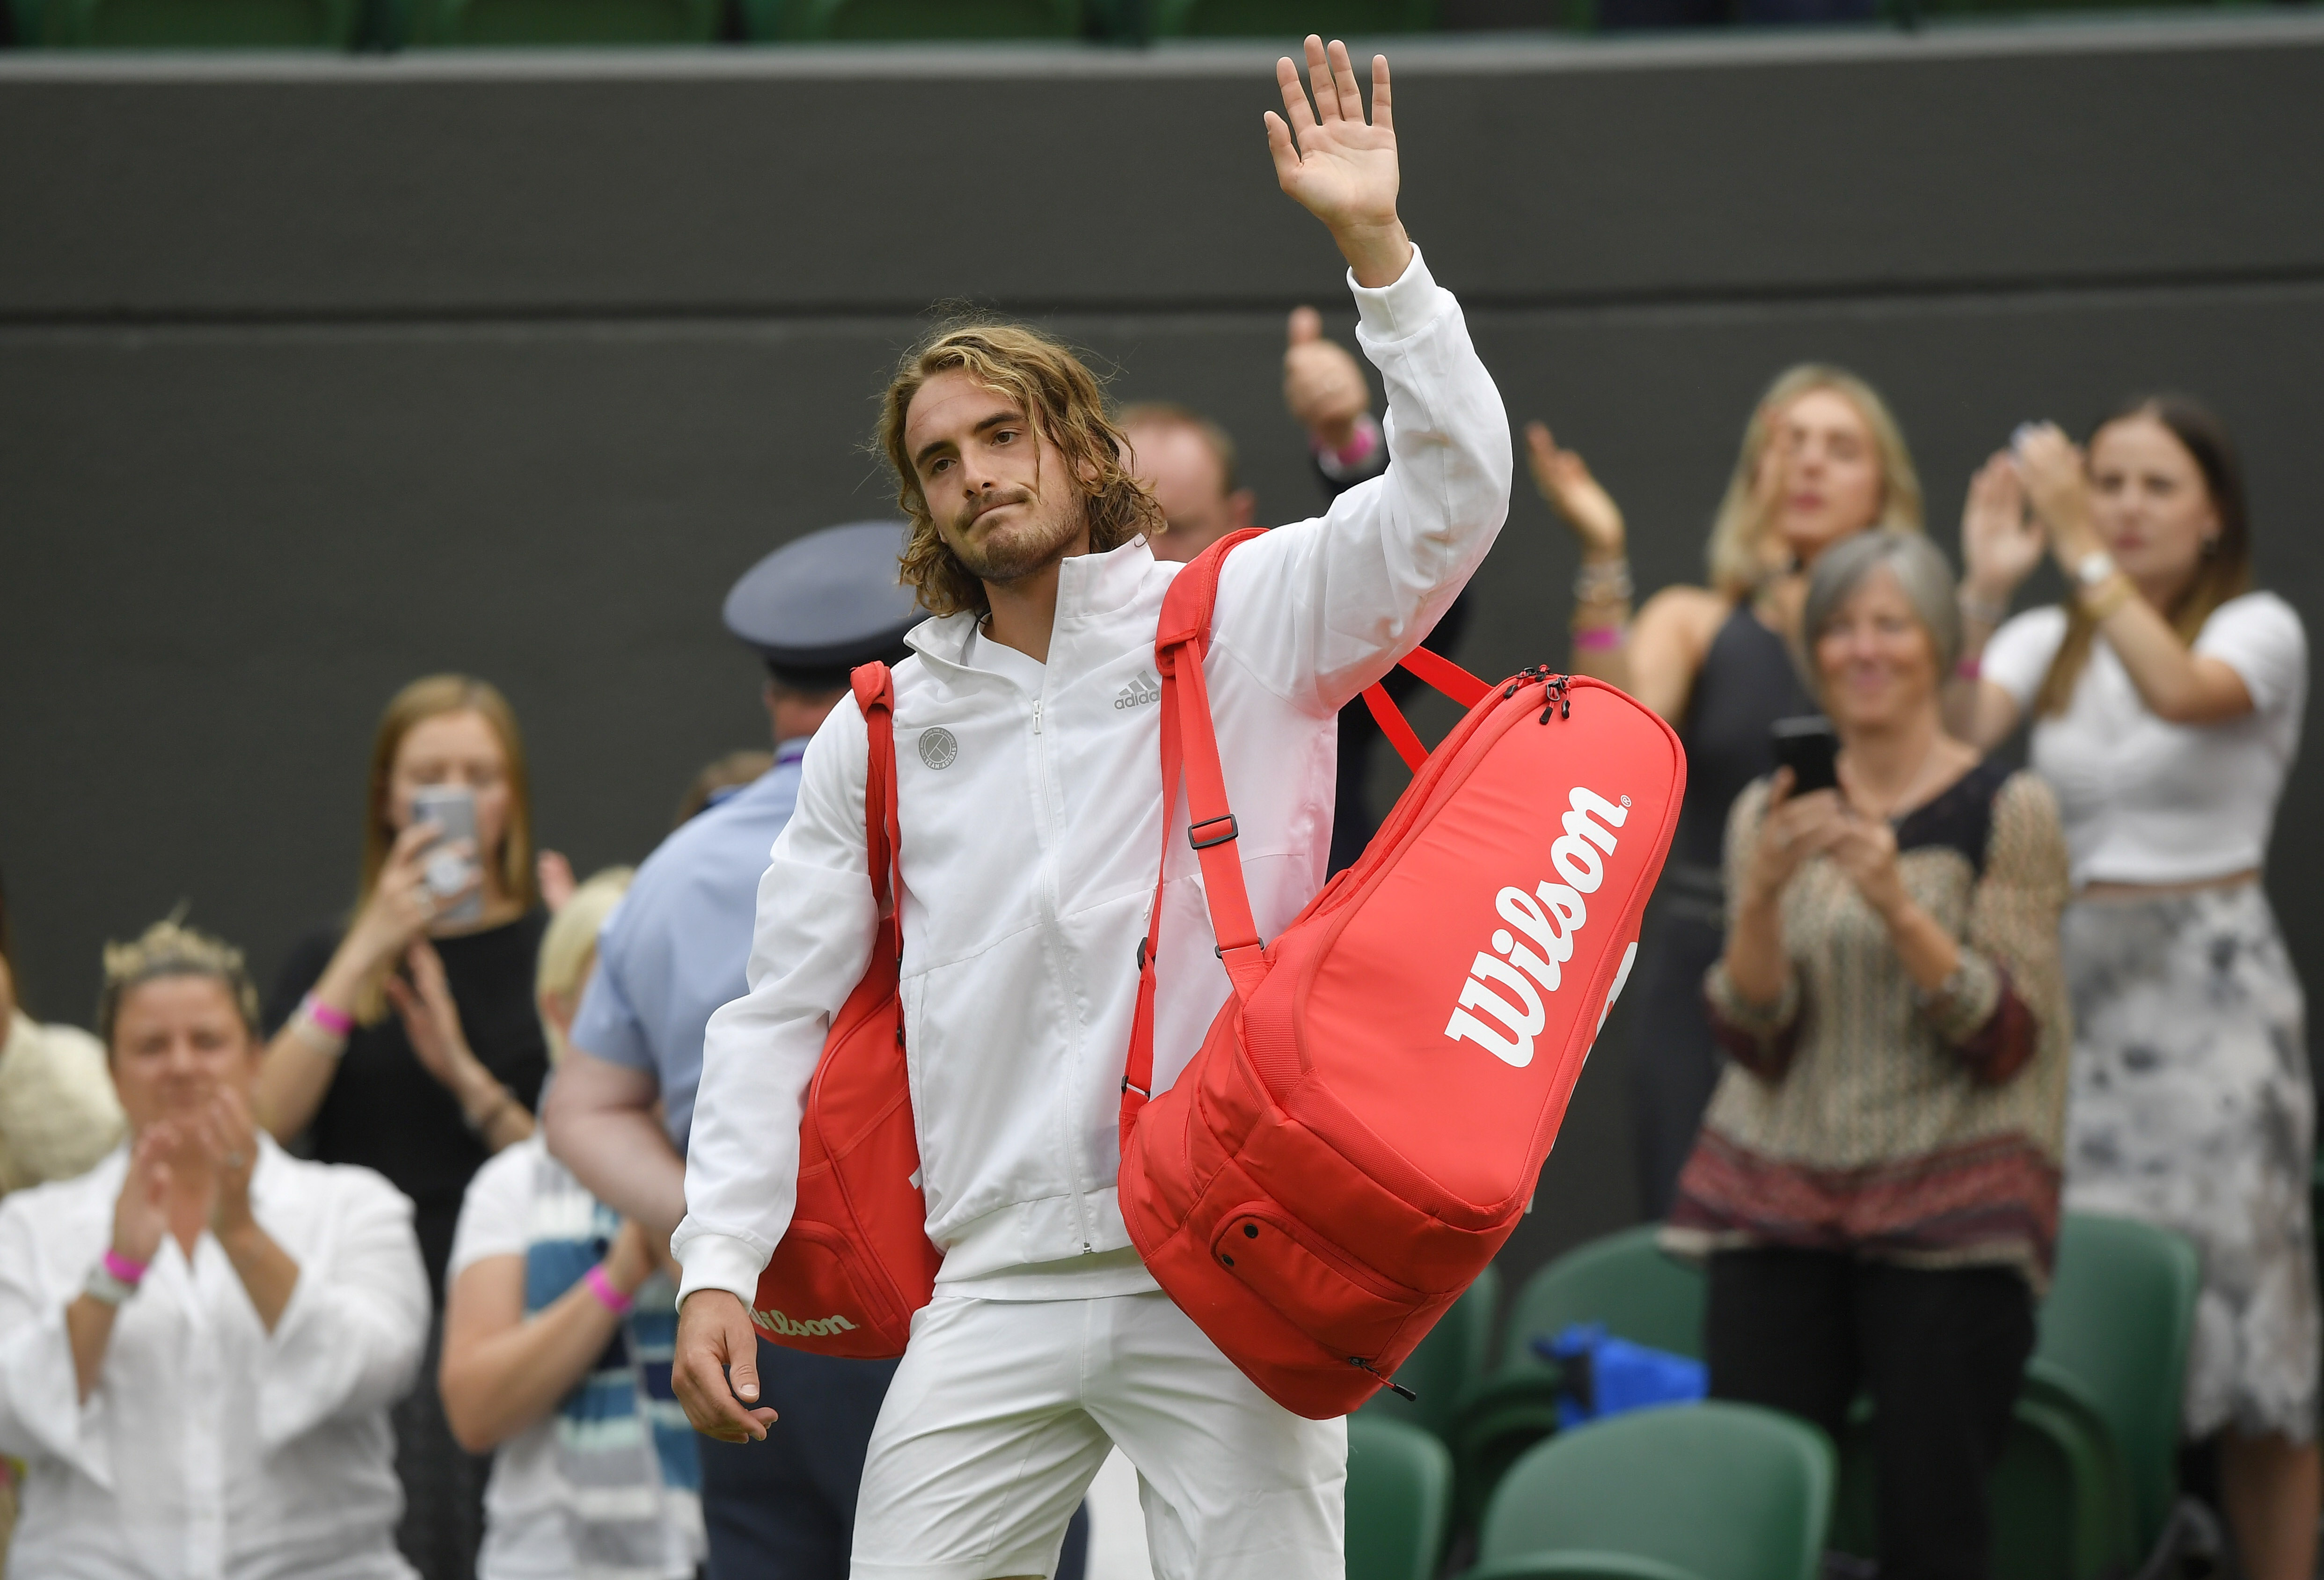 Tennis - Wimbledon - All England Lawn Tennis and Croquet Club, London, Britain - June 28, 2021 Greece's Stefanos Tsitsipas looks dejected as he waves after losing his first round match against Frances Tiafoe of the U.S. REUTERS/Toby Melville